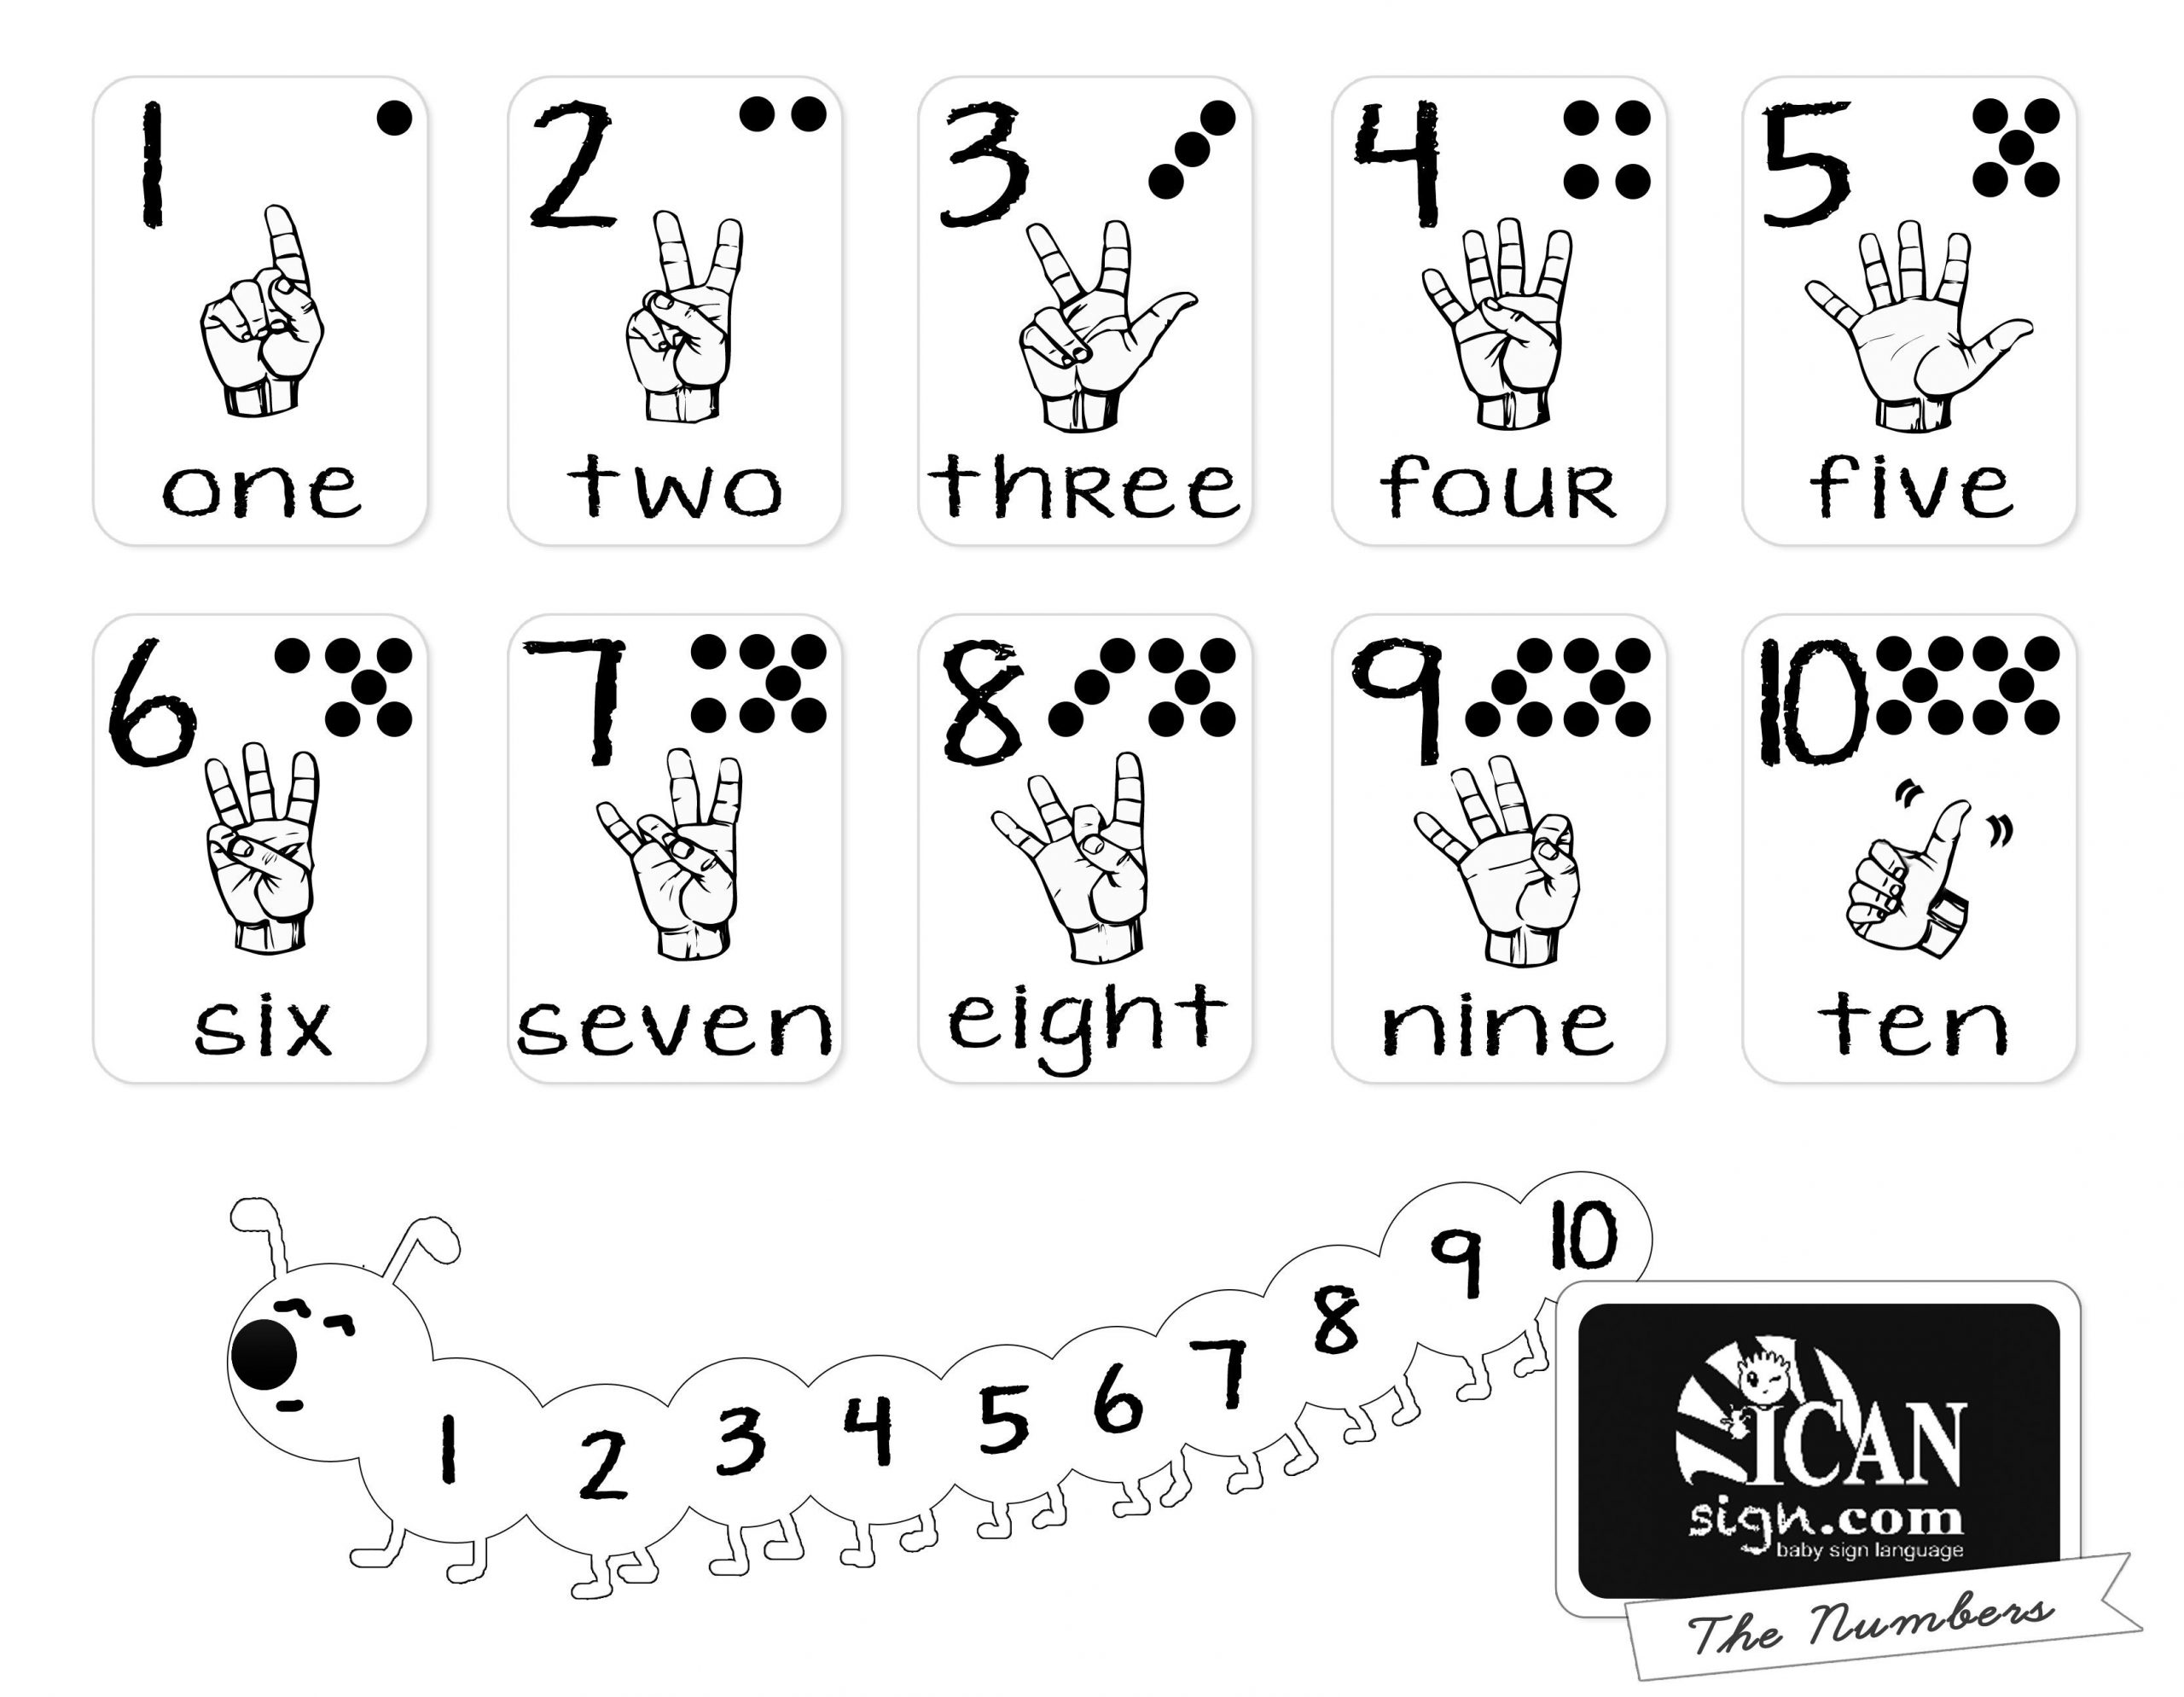 American Sign Language Worksheets Printable Pin by Sarah Mcclure On Sign Language Charts